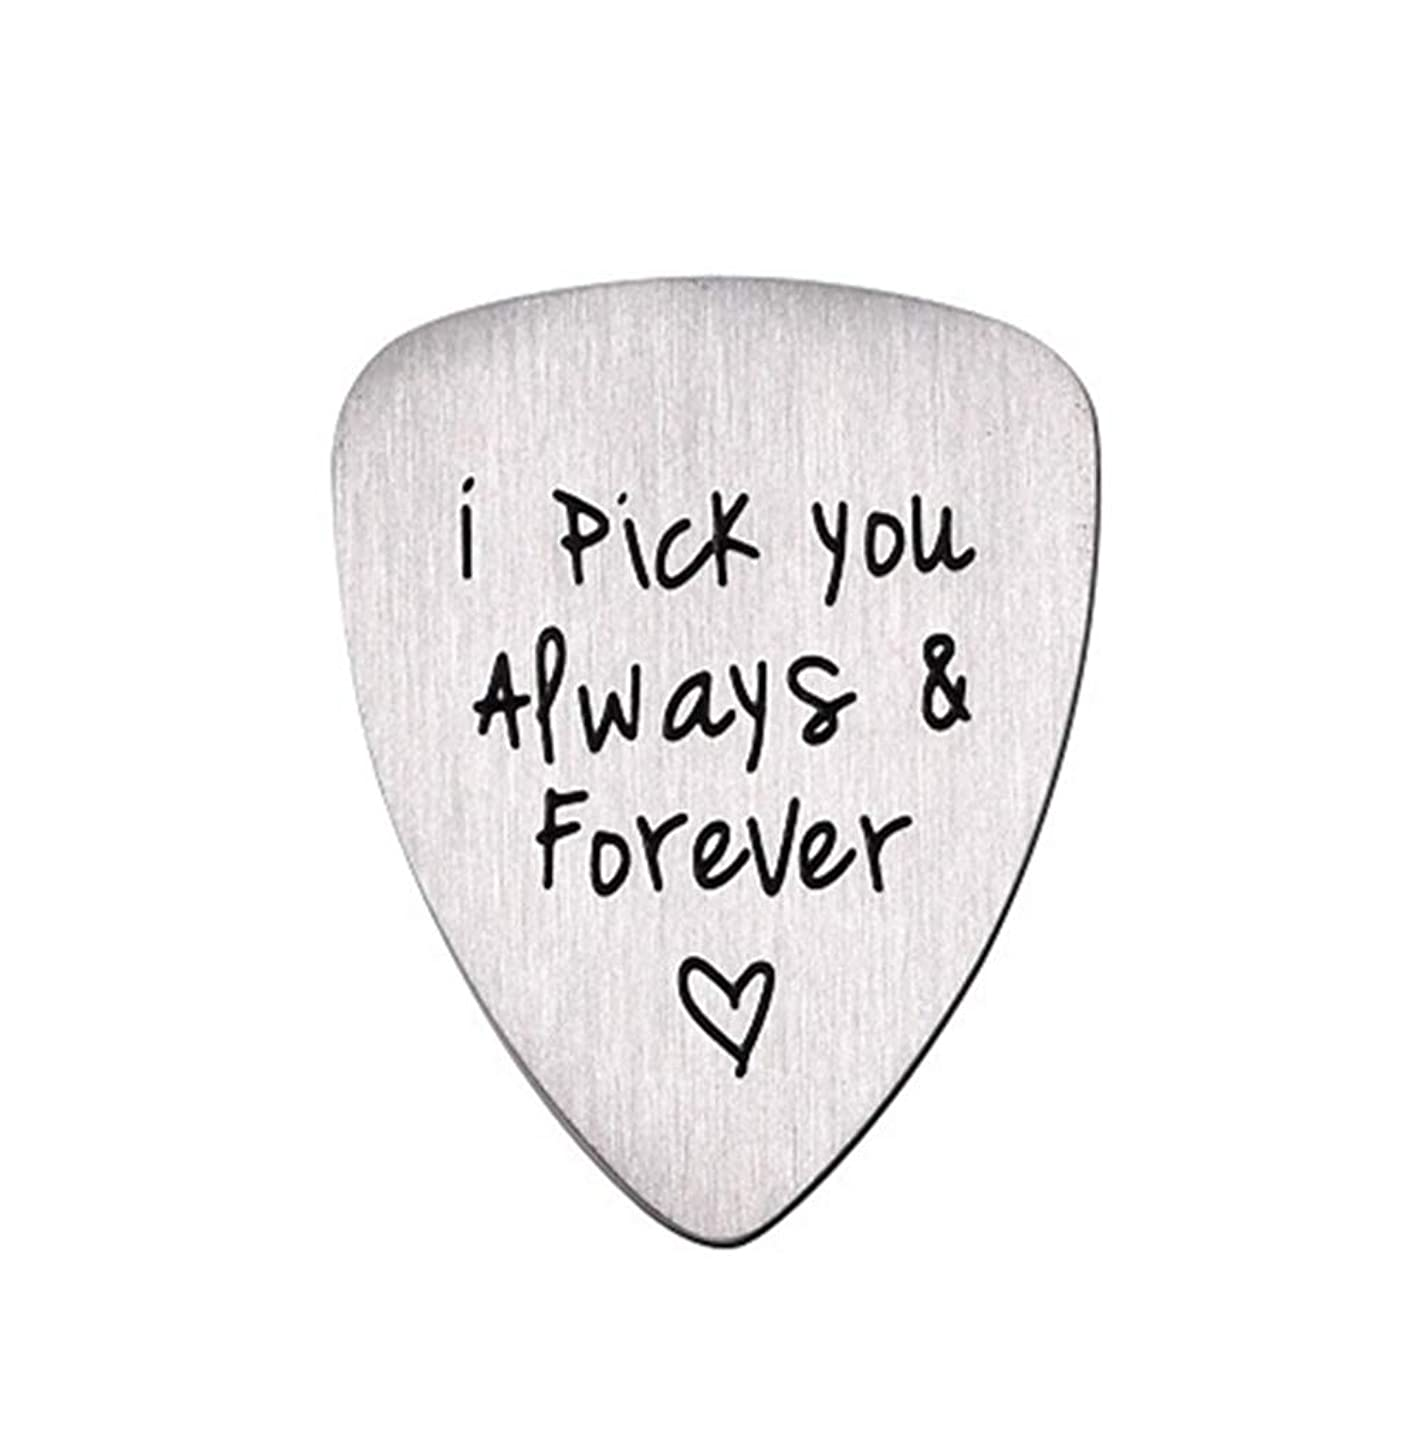 Gifts for Him Men, Unique Birthday Gift for Musician Husband Boyfriend Fianc¨| Guitar Pick Jewelry Wedding Valentines Father's Day Christmas Gifts